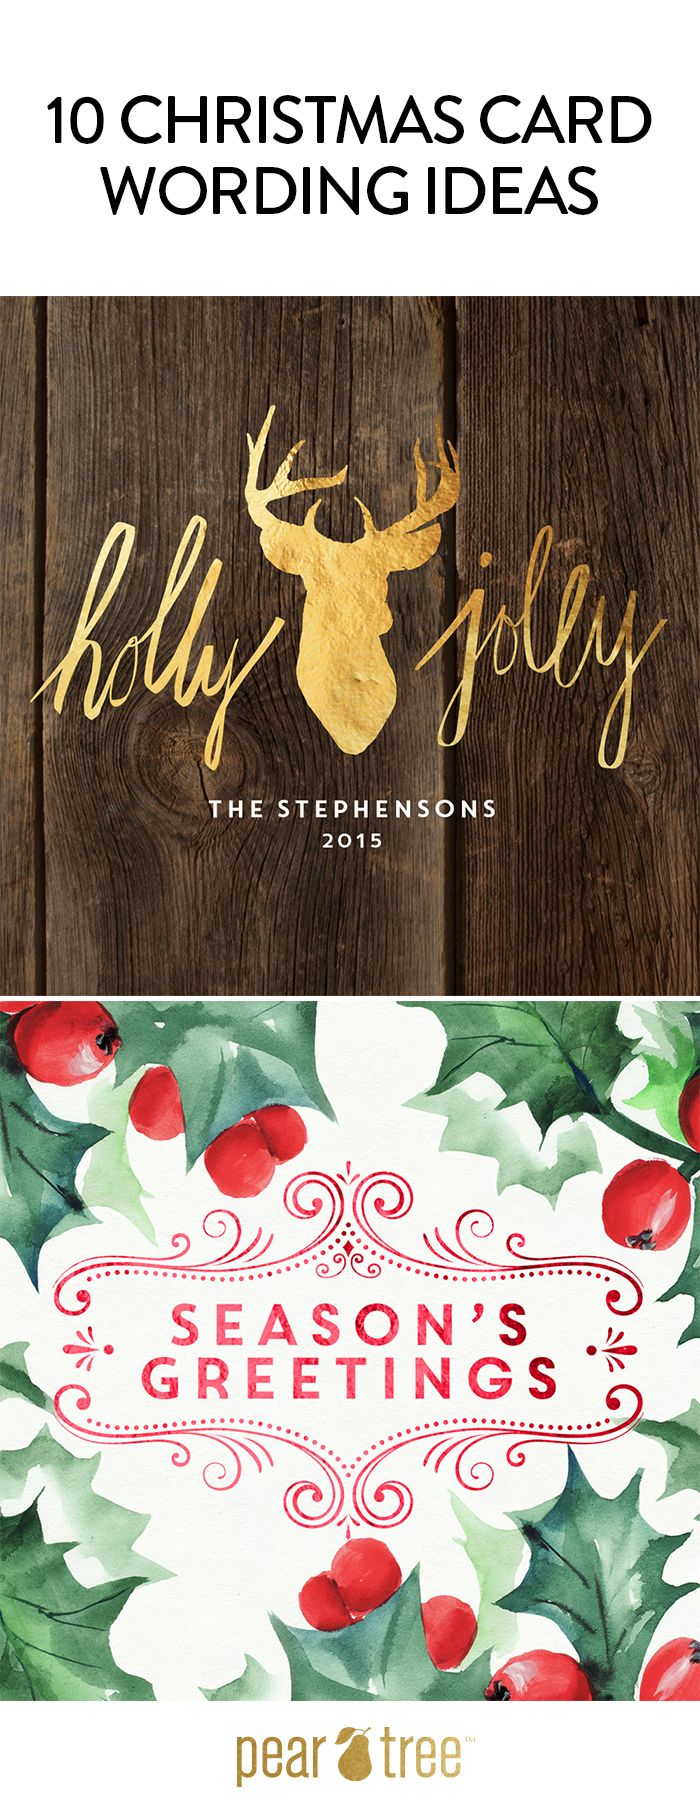 Top 10 Christmas Card Wording Ideas Pear Trees And Holidays